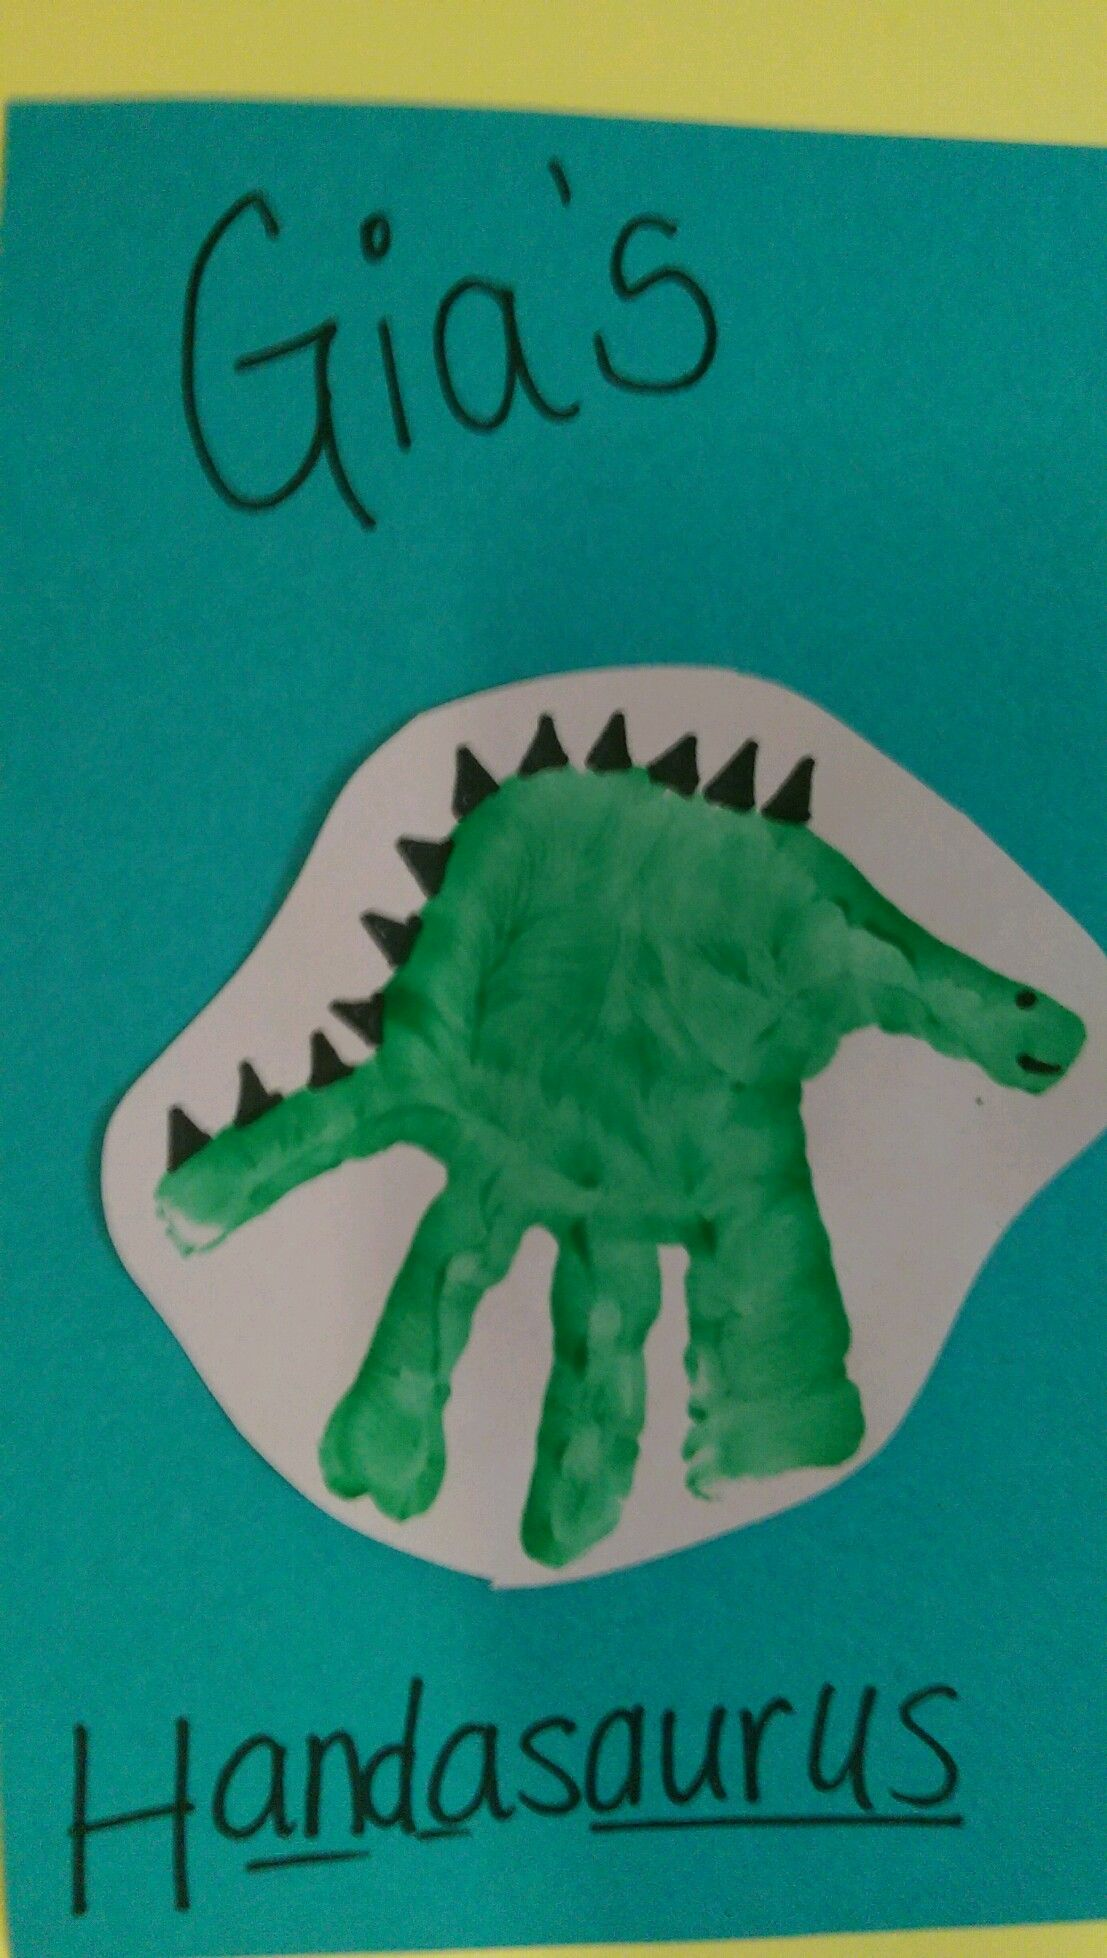 Dinosaur handprint arts crafts idea for children for Dinosaur crafts for toddlers